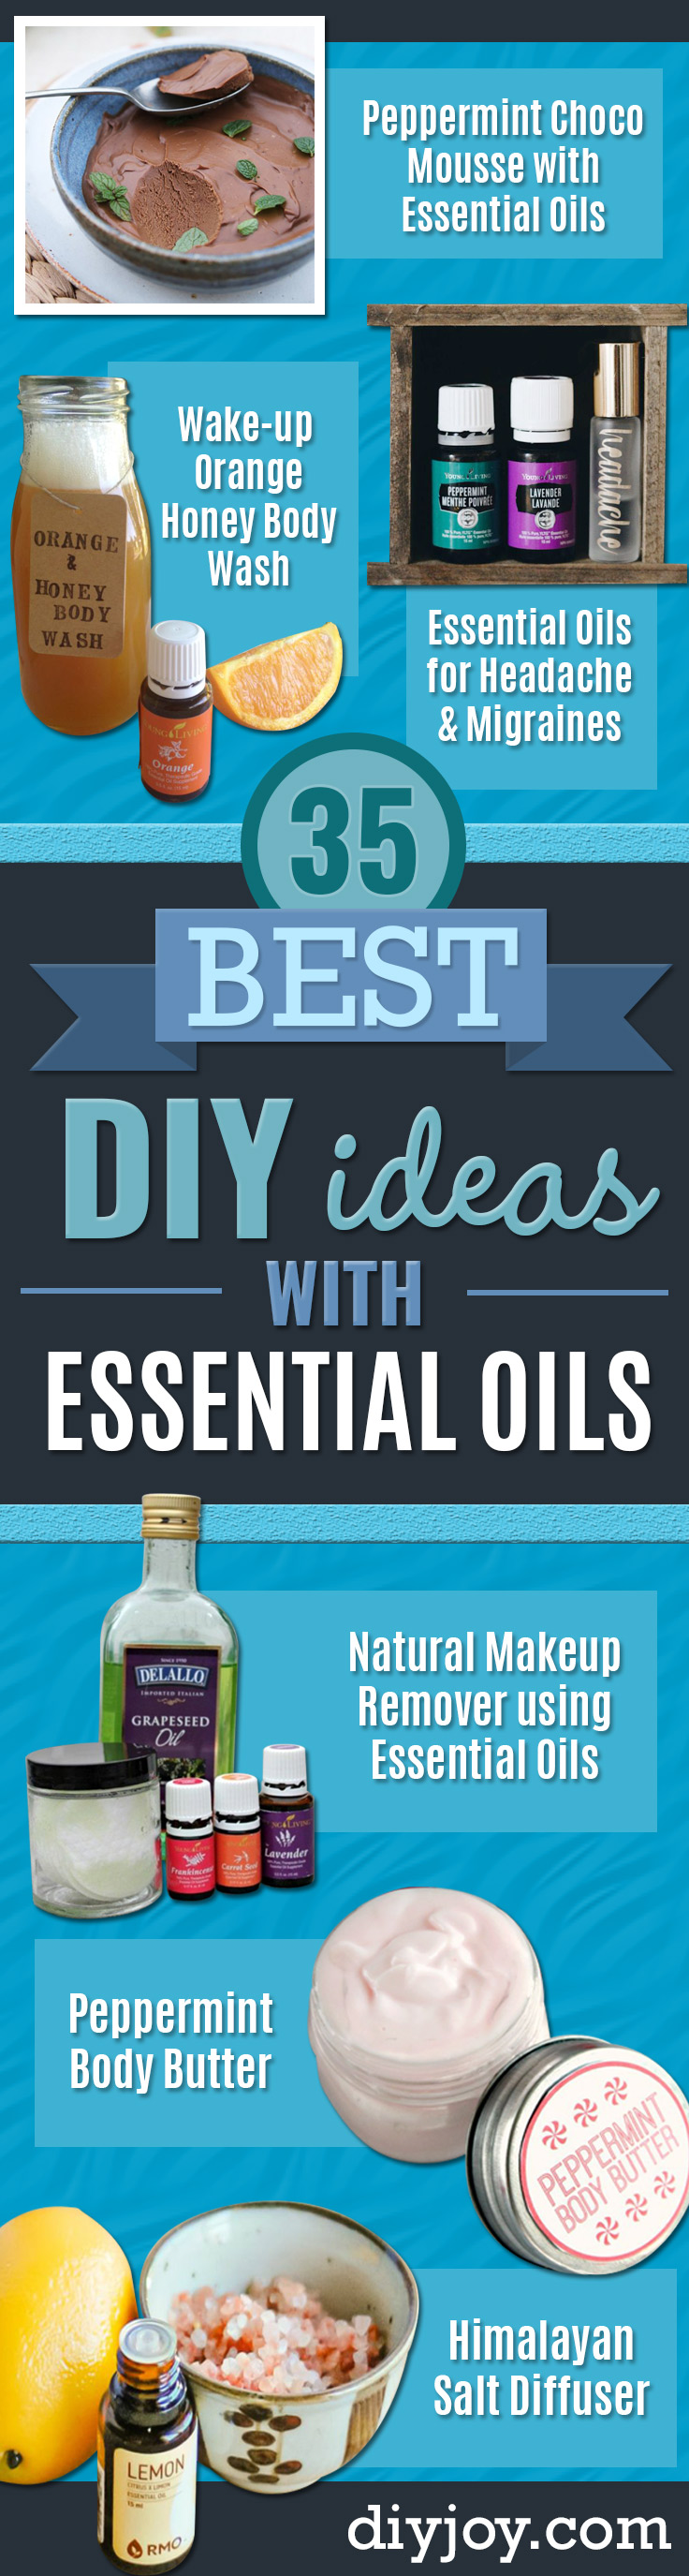 DIY Essential Oil Recipes and Ideas - Cool Recipes, Crafts and Home Decor to Make With Essential Oil - Diffuser Projects, Roll On Prodicts for Skin - Recipe Tutorials for Cleaning, Colds, For Sleep, For Hair, For Paint, For Weight Loss #essentialoils #diy